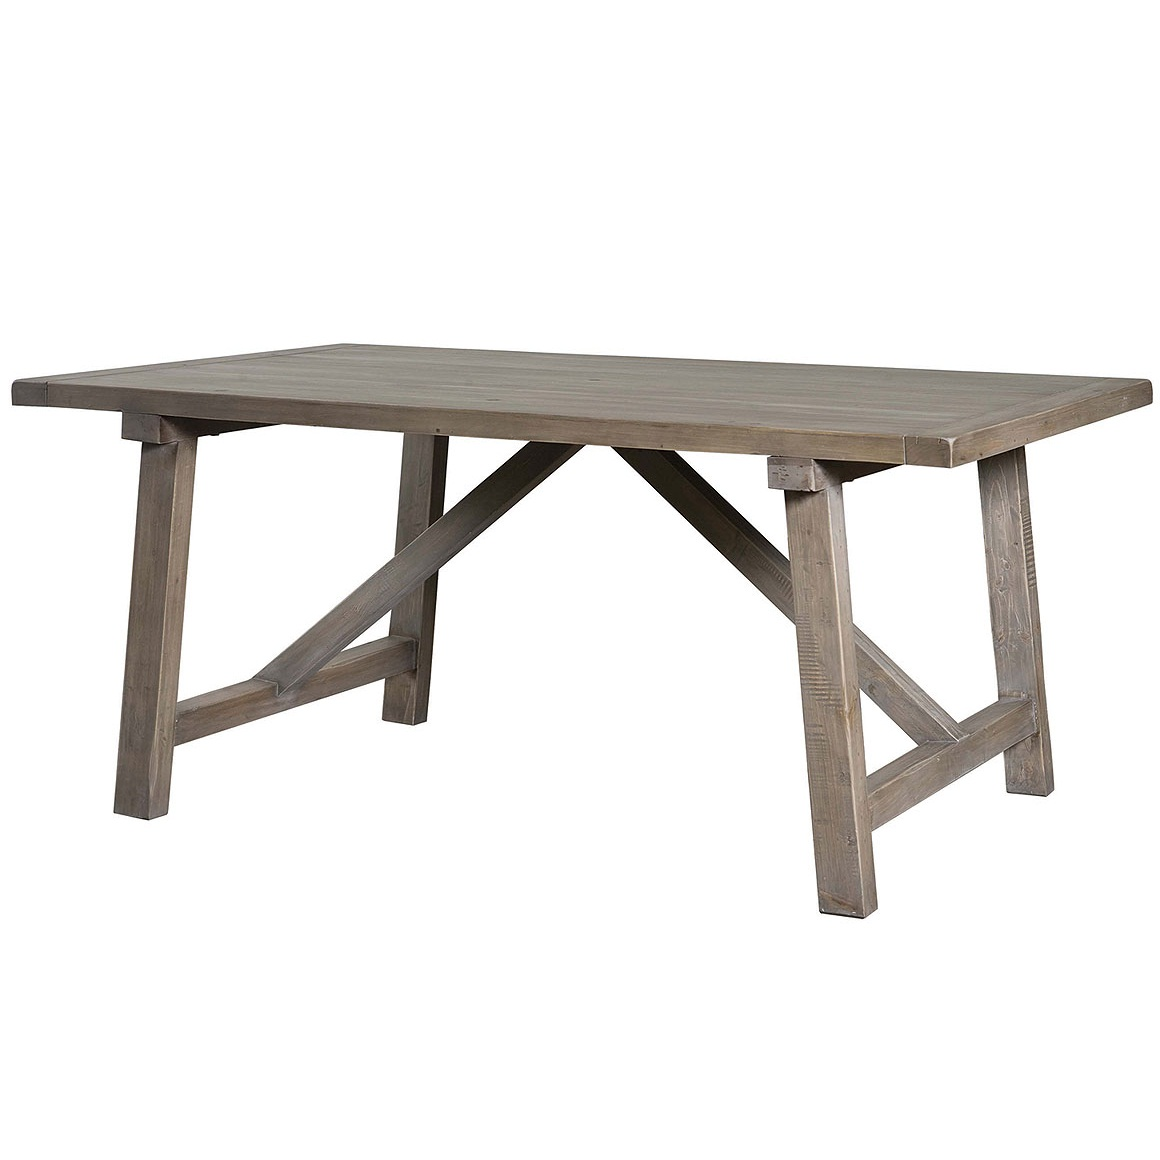 Dining table farm house dining table for Farmhouse dining table